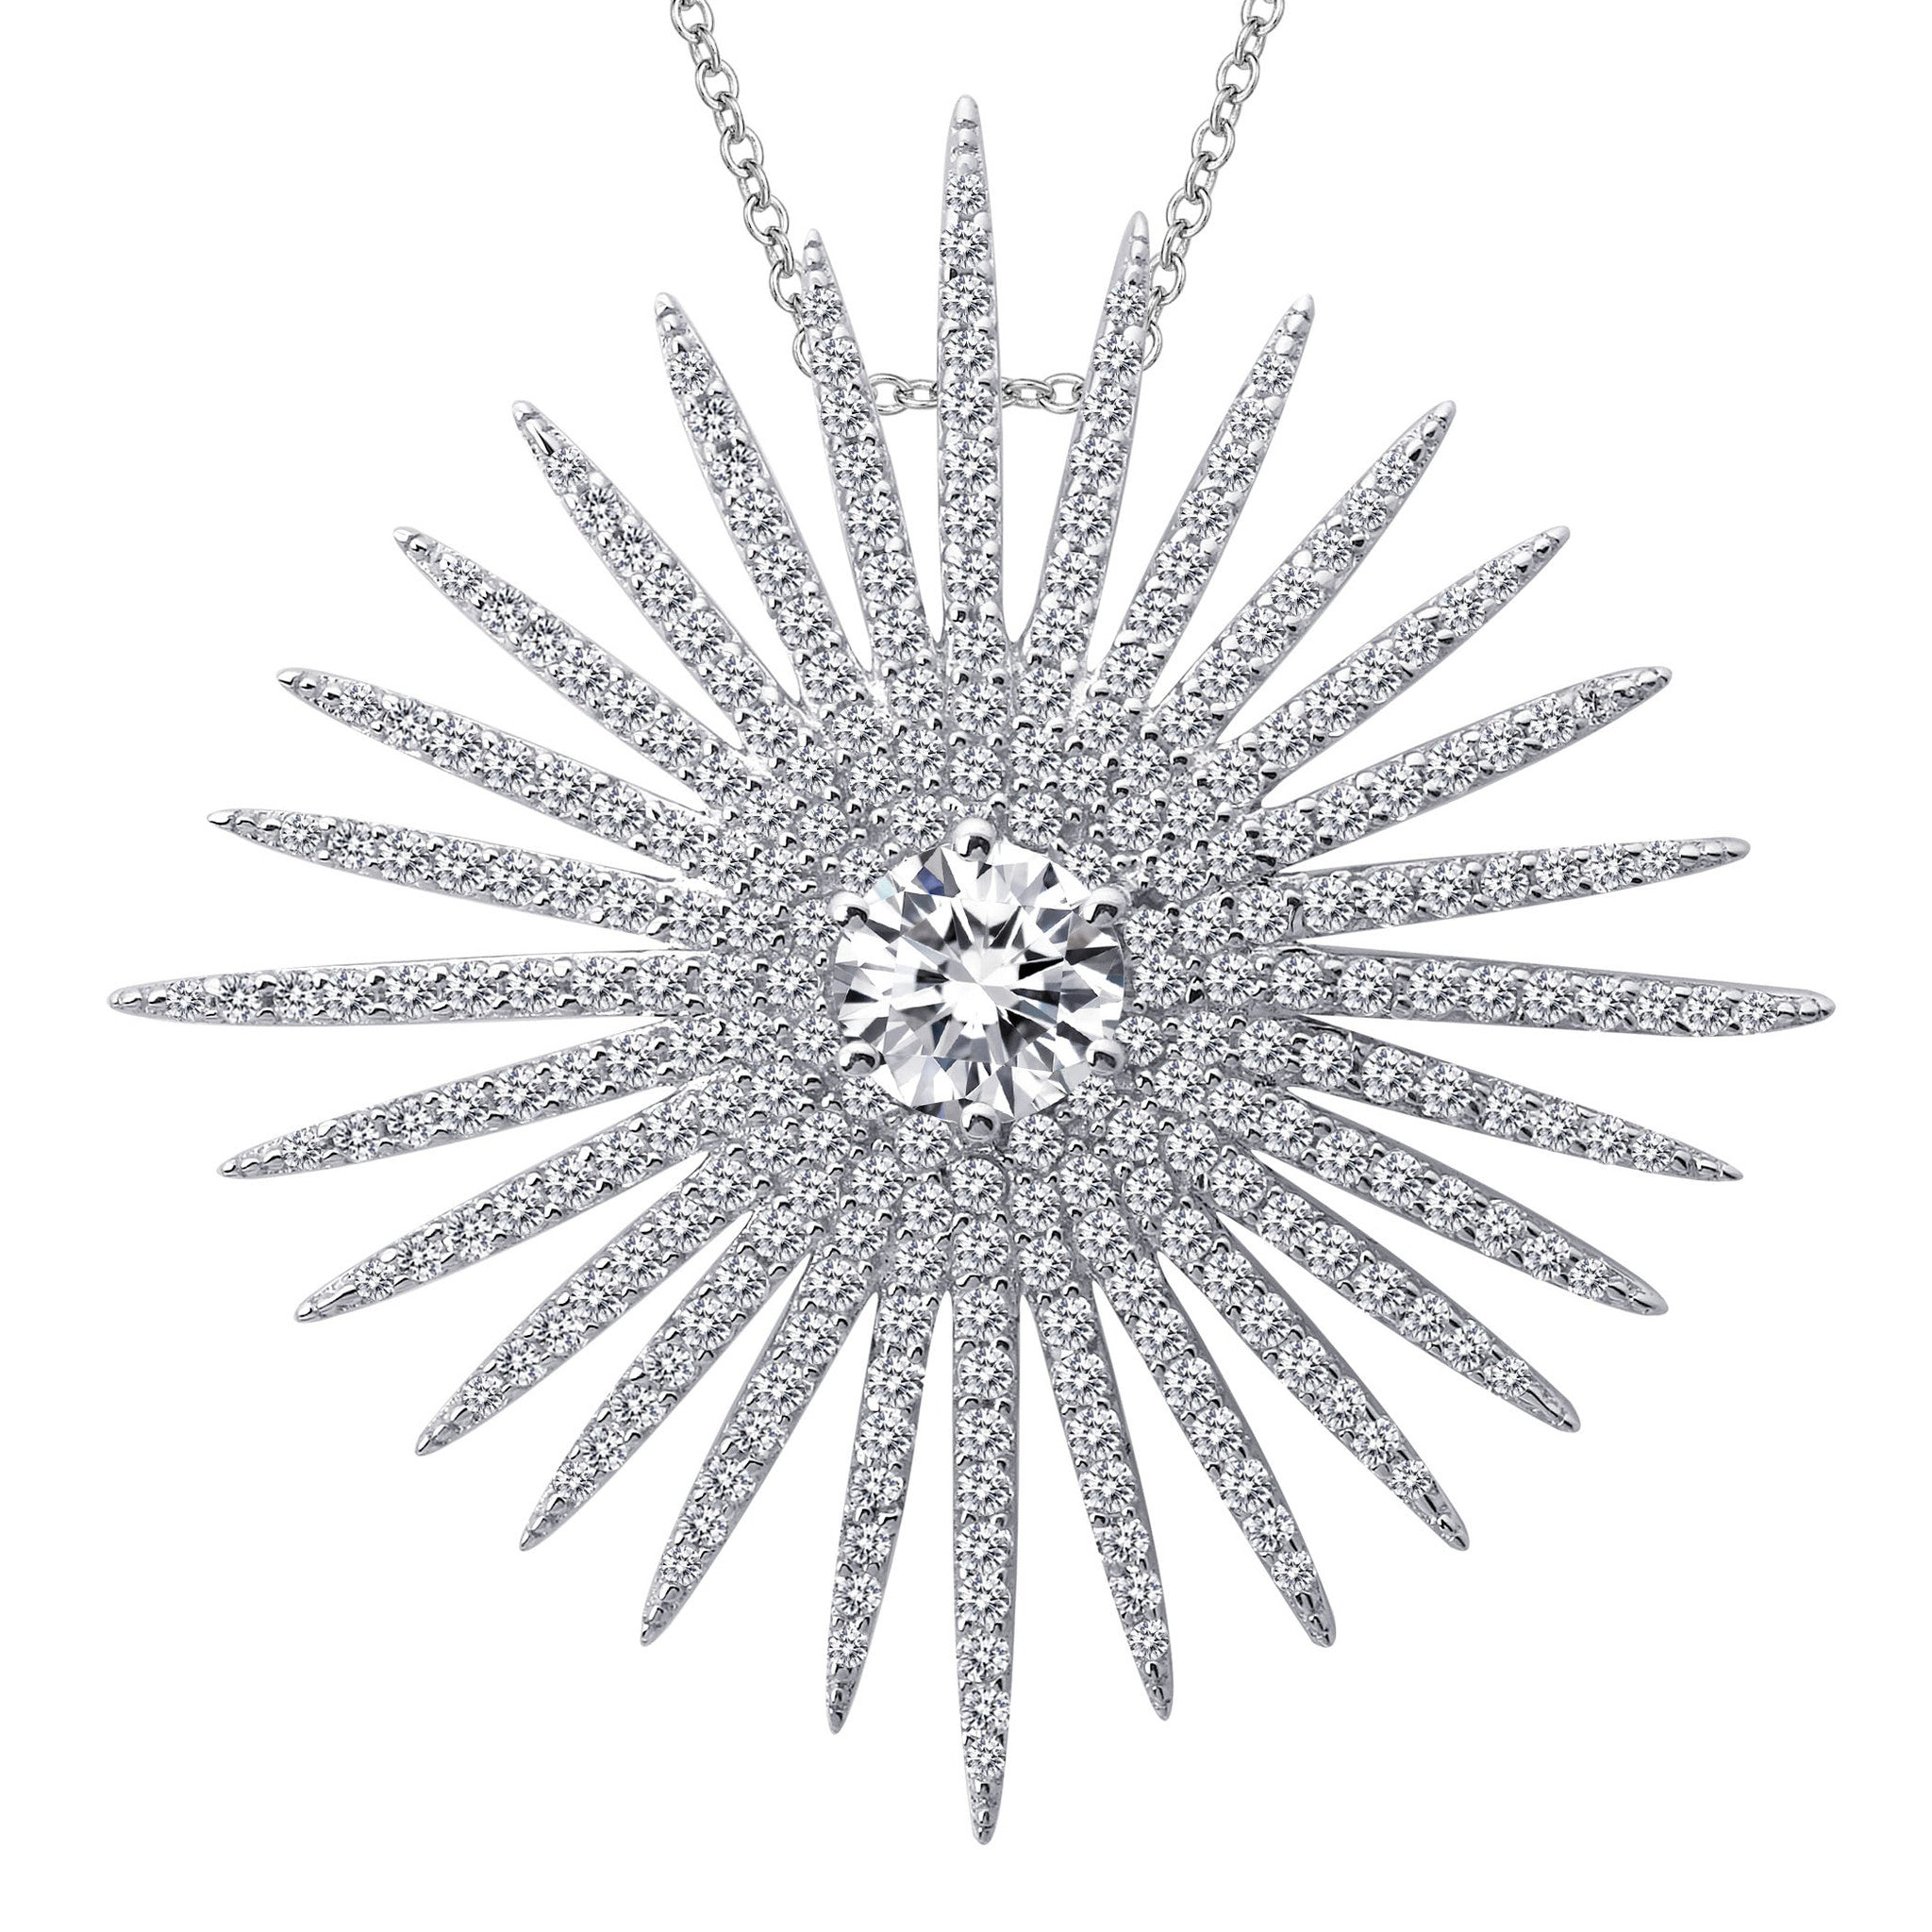 Sterling Silver and Platinum Sunburst Pendant by Lafonn